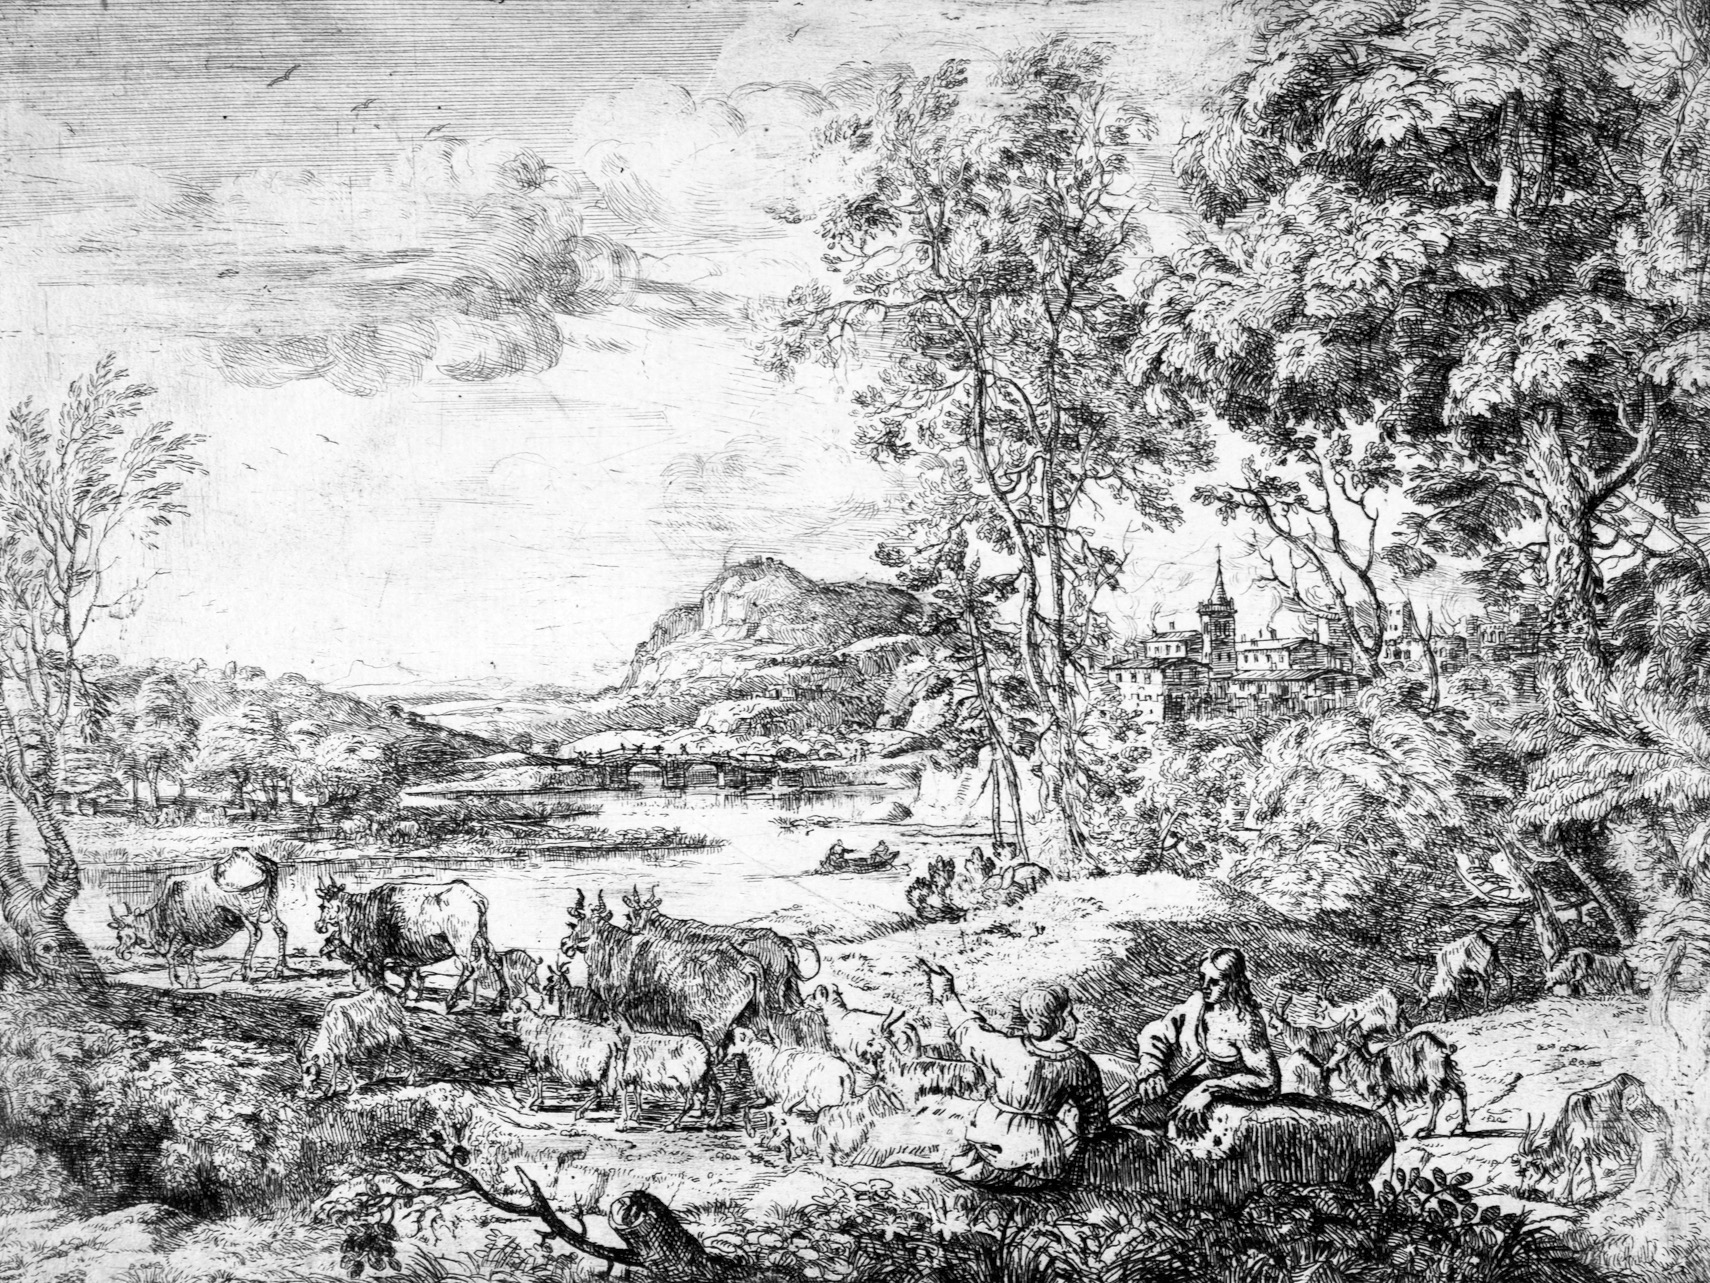 Engraving of landscape with woman, man & domesticated animals.